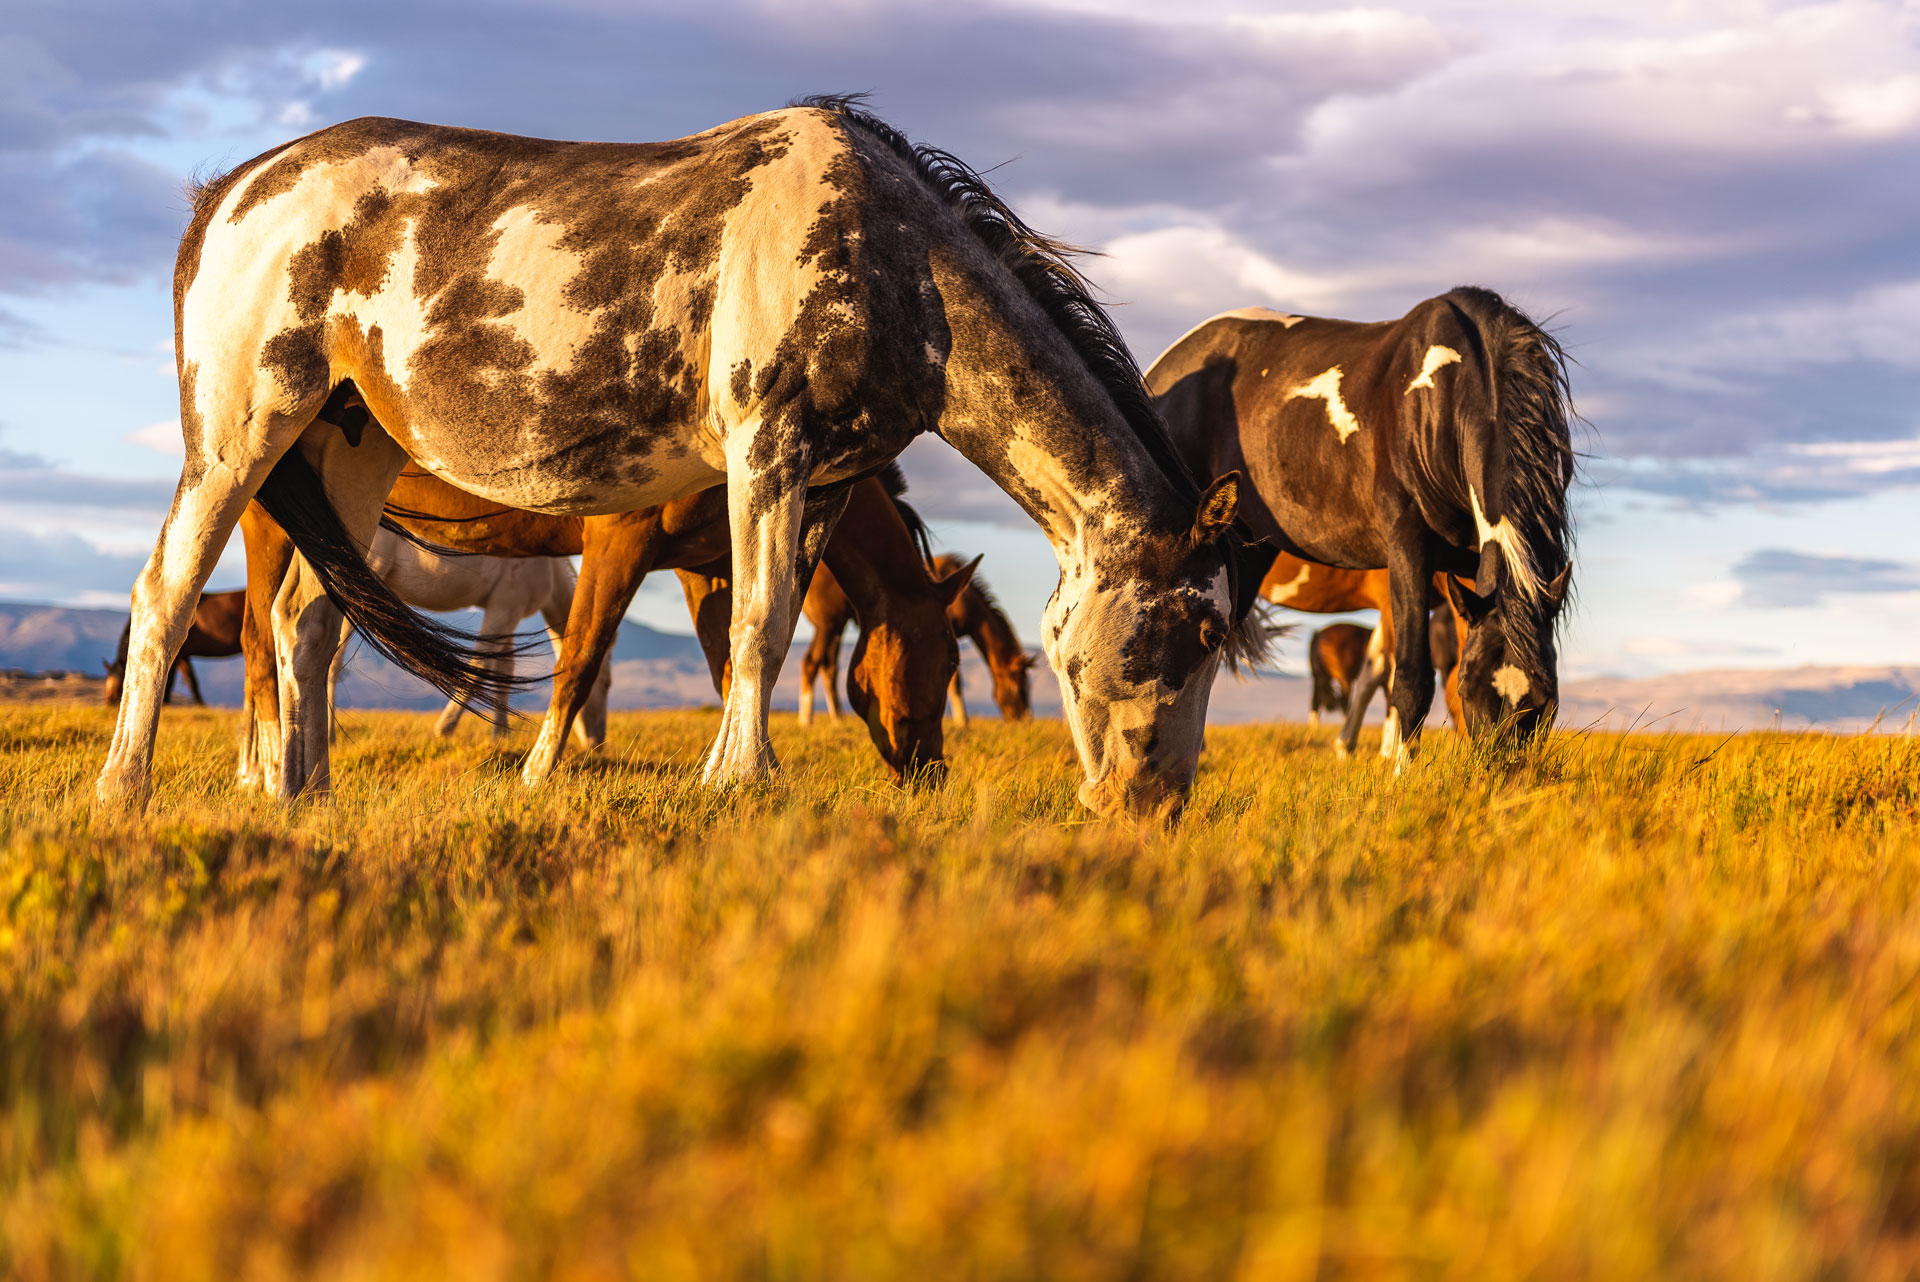 Horses in the fields of Patagonia